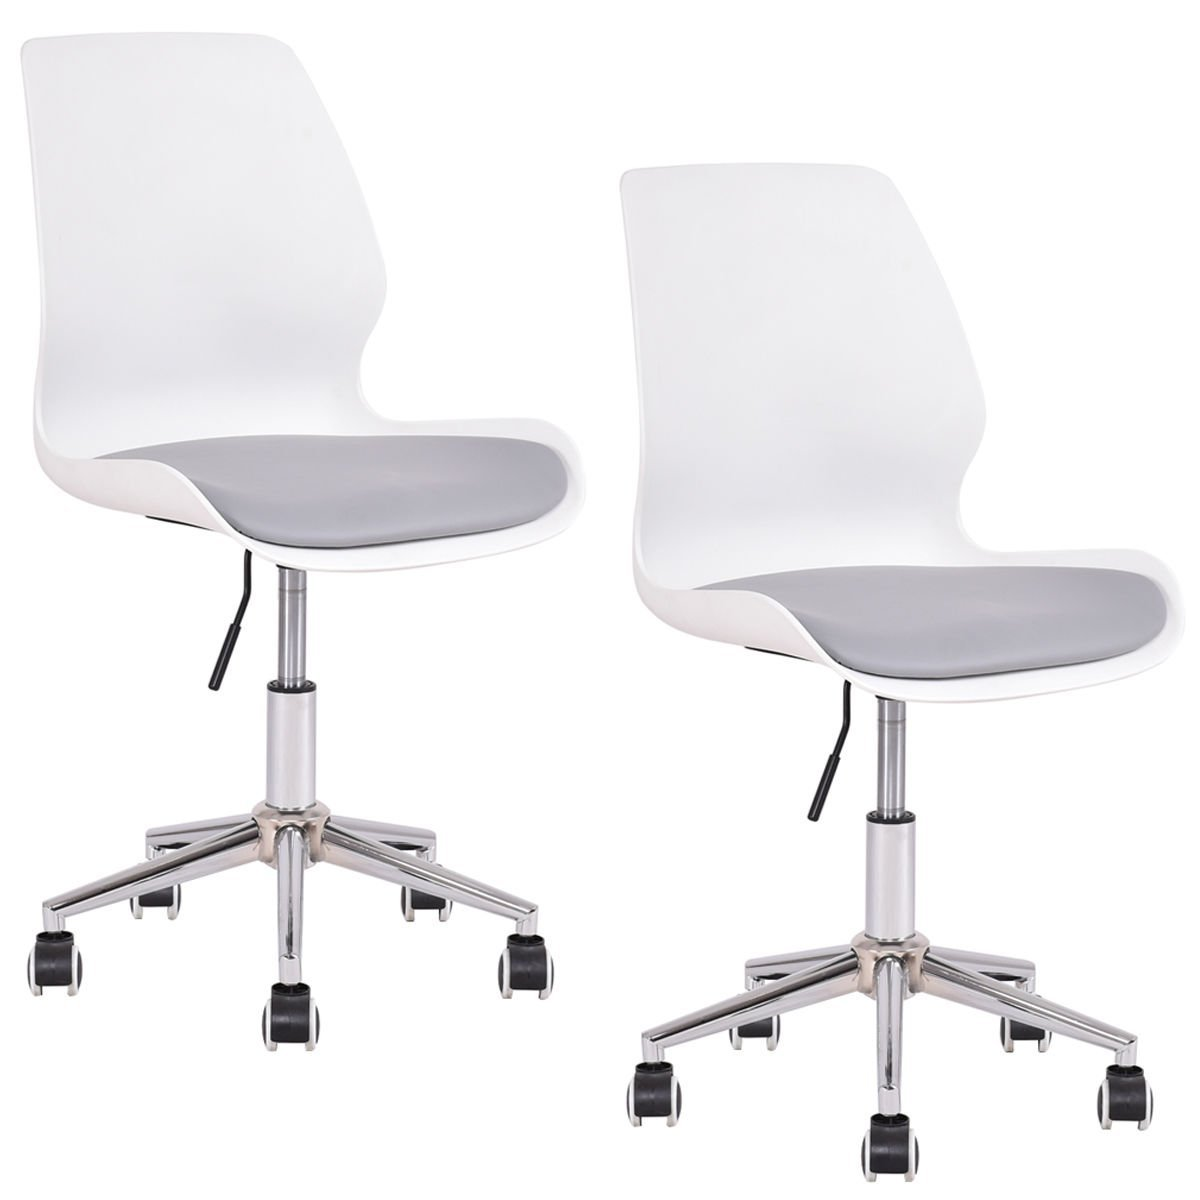 GHP 2-Pcs 330-Lbs Capacity PP Upholstered Seat 360 Swivel Chairs with Armrests